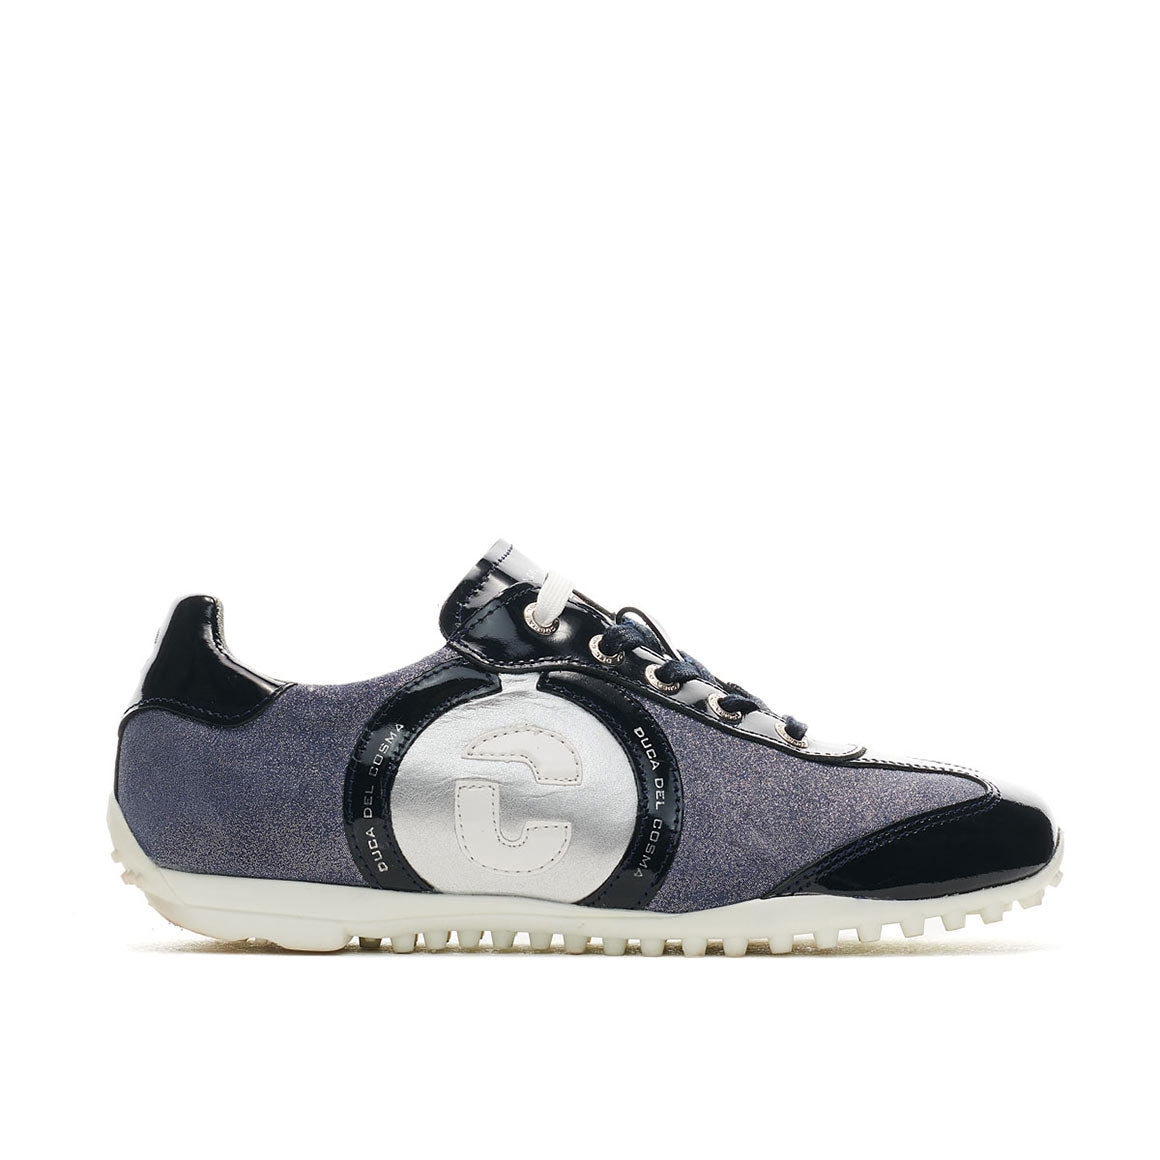 Women's Kubana Navy / Silver Golf Shoe